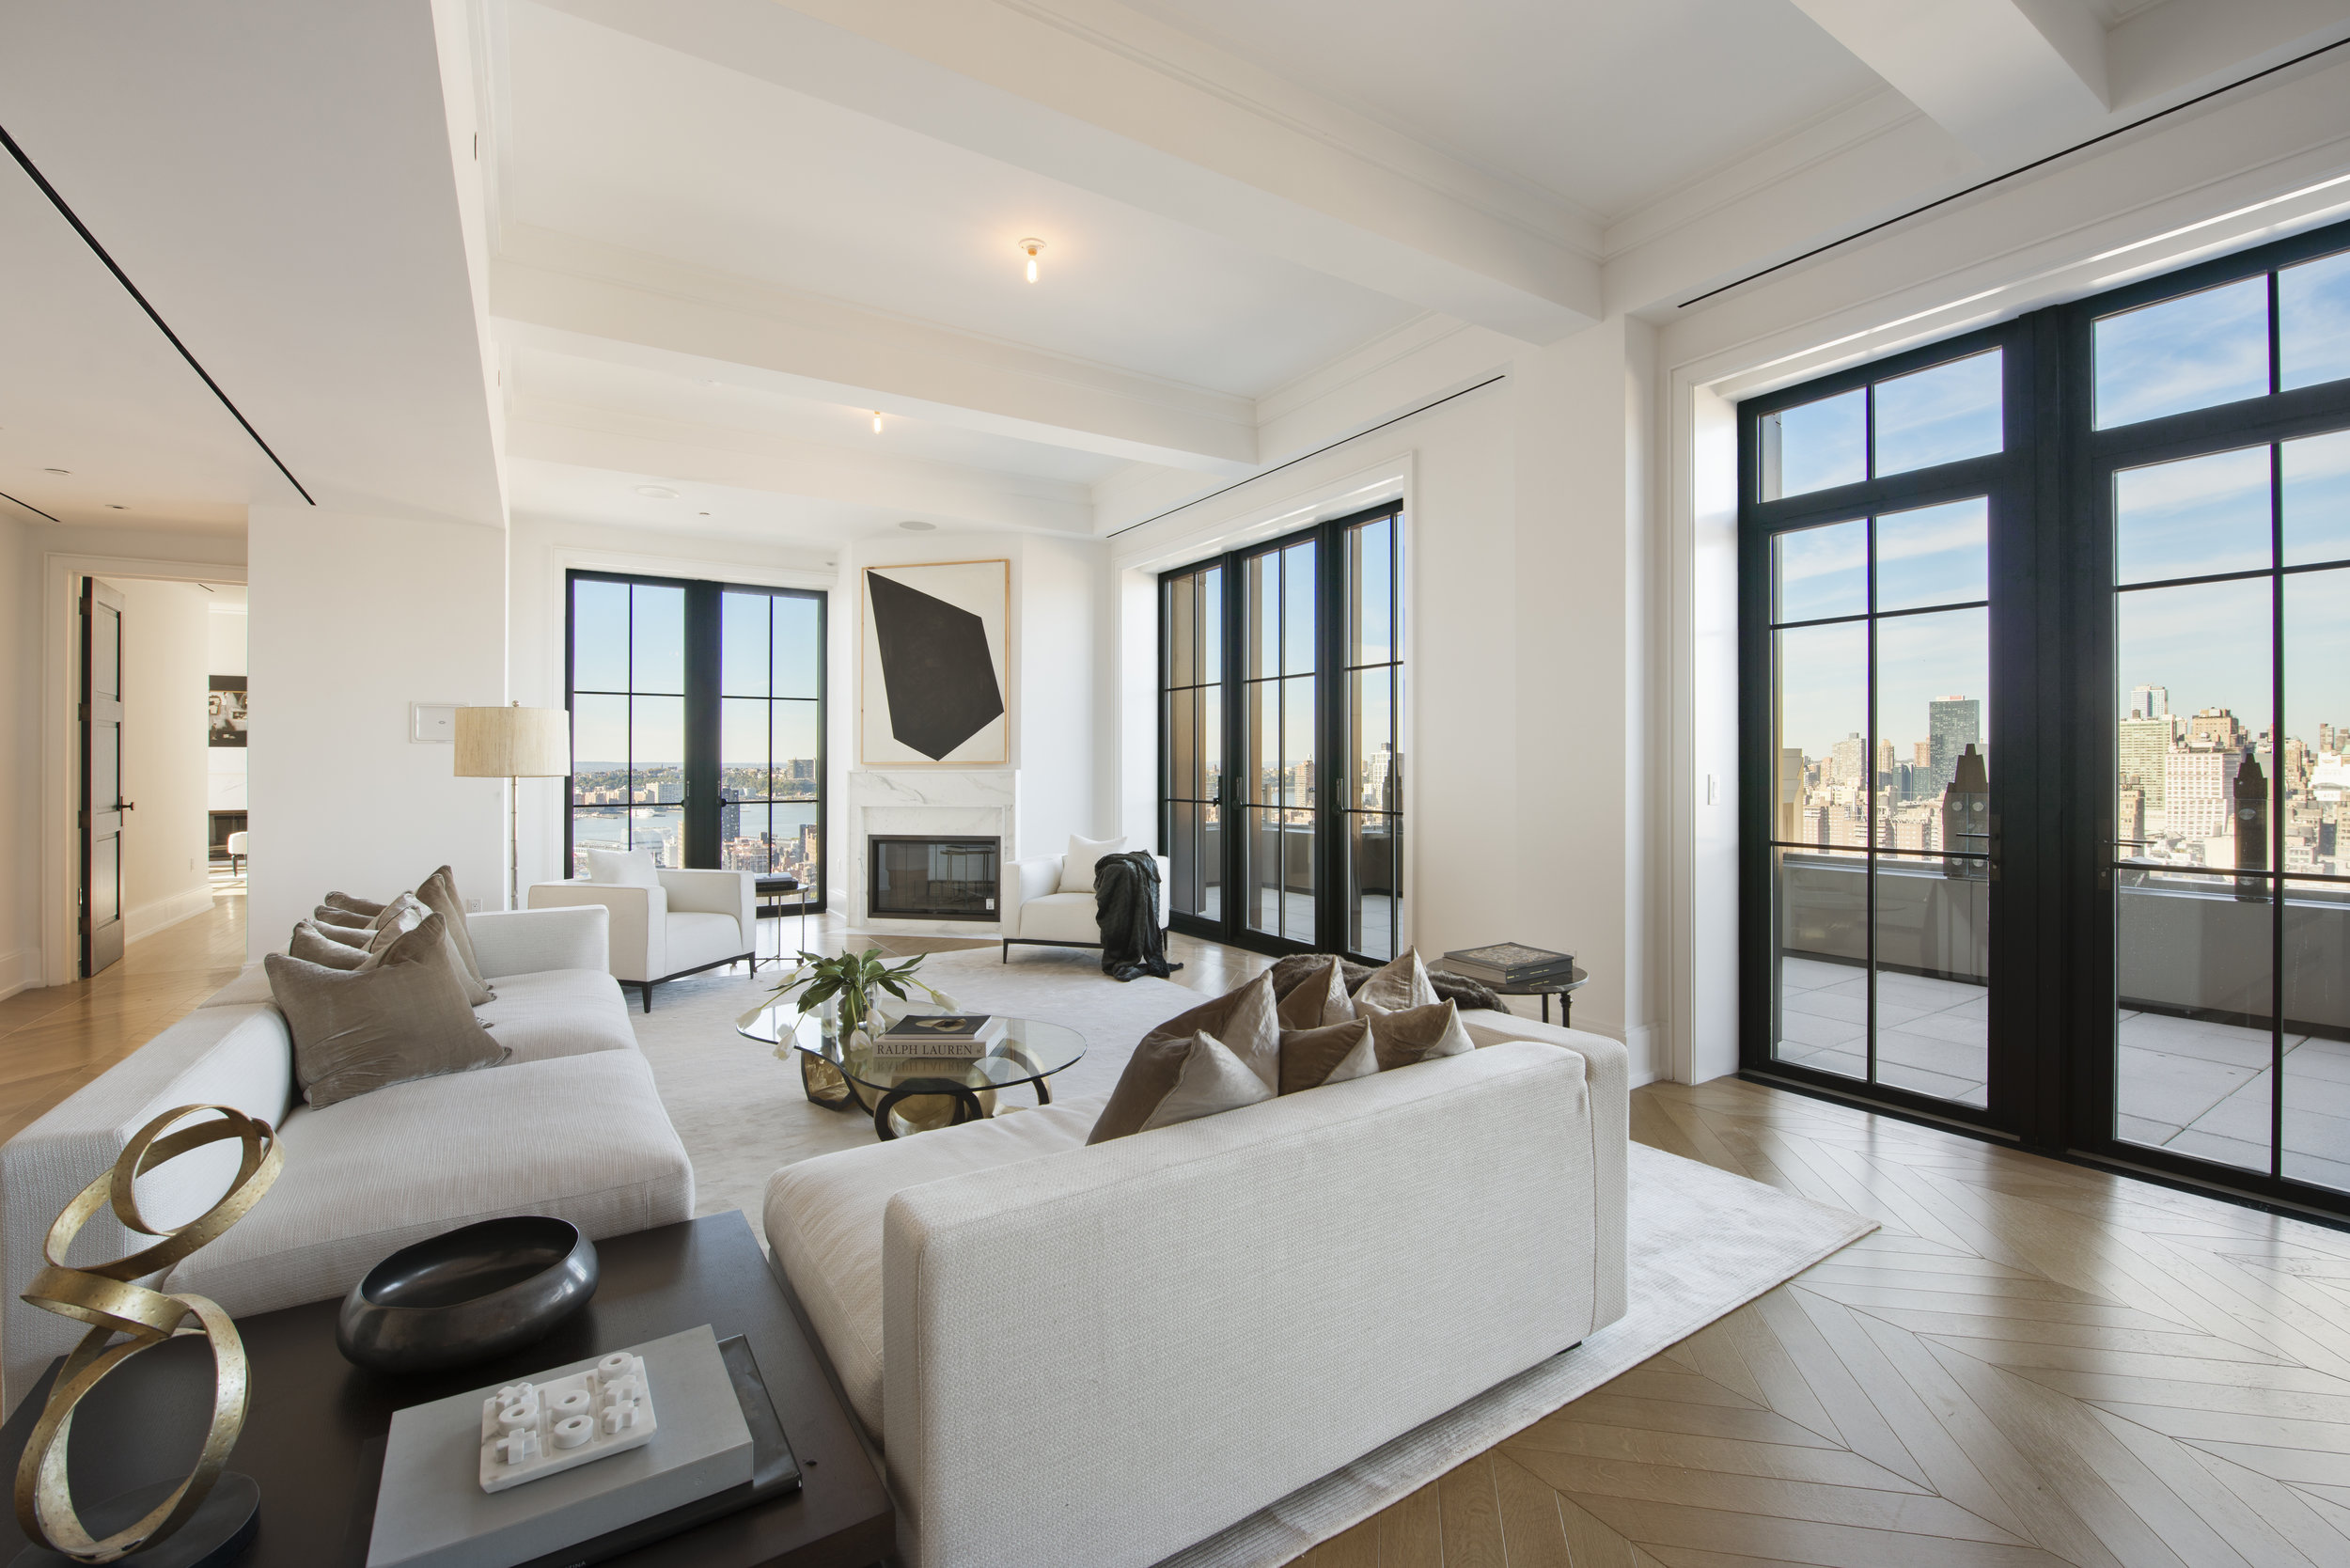 WalkerTower212West18thStreetPH2_Vickey_BarronDouglasElliman_Photography_20691363_high_res.jpg